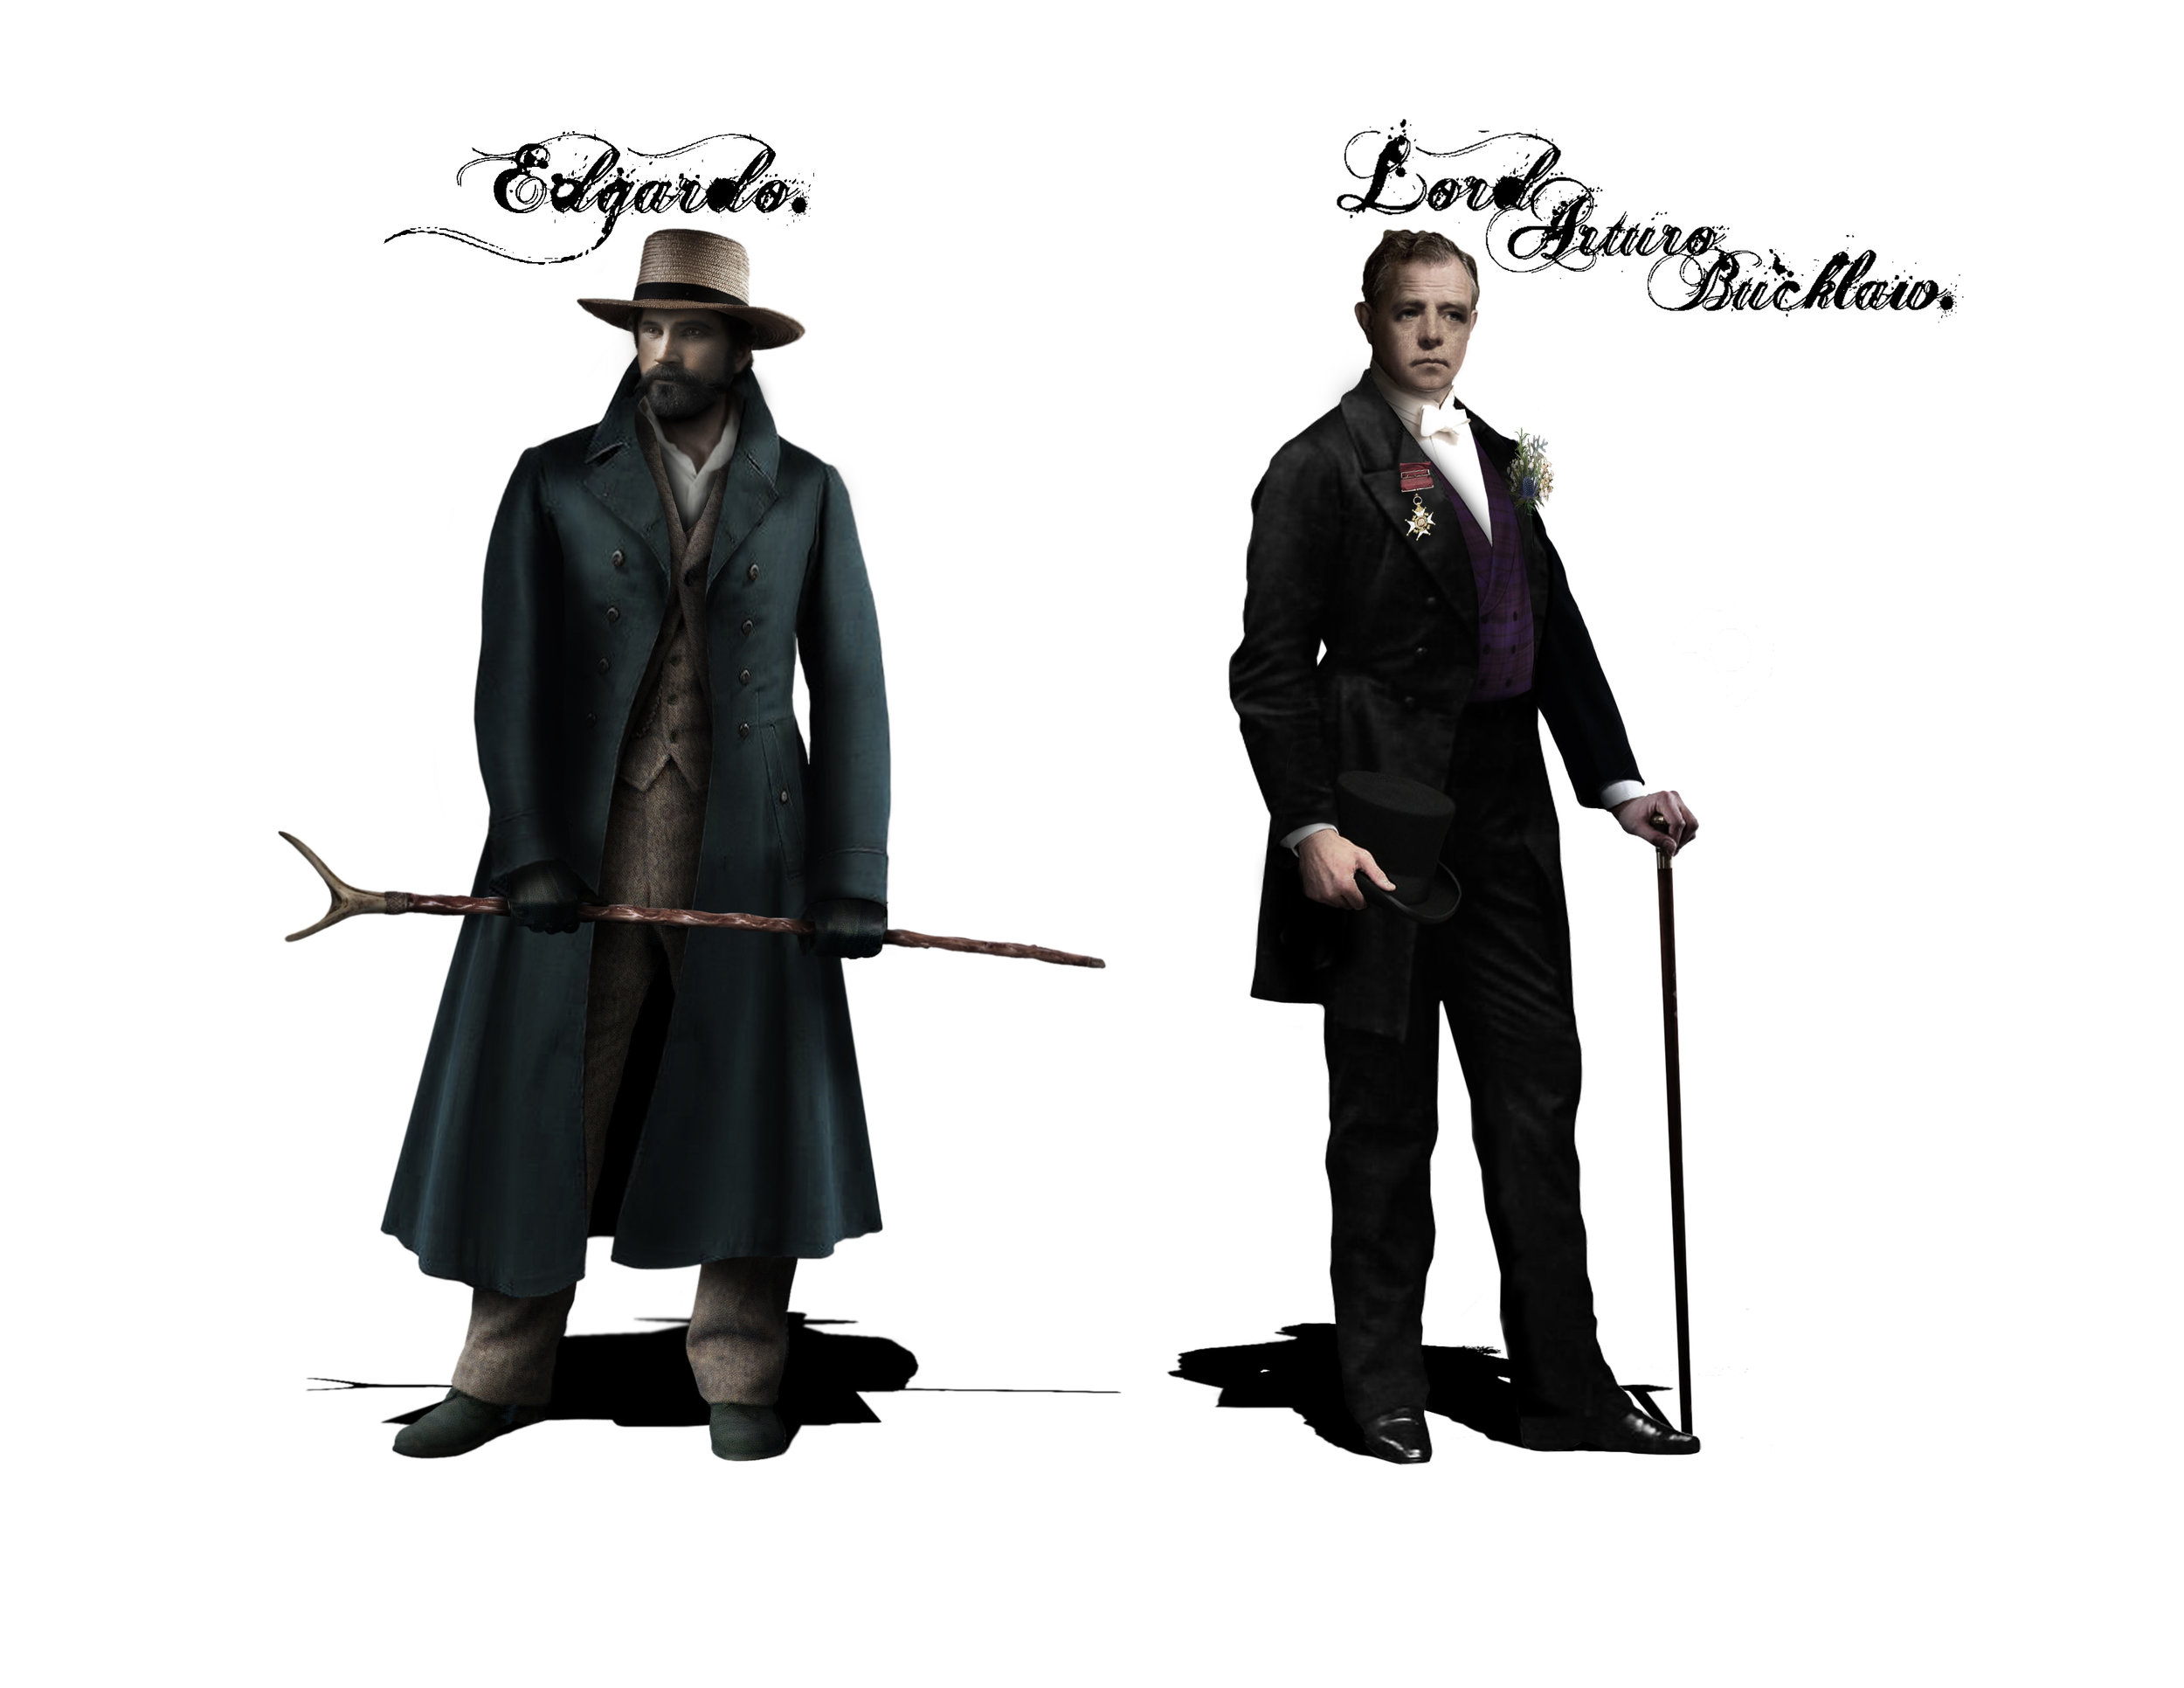 EDGARDO & LORD BUCKLAW - Costume Designs